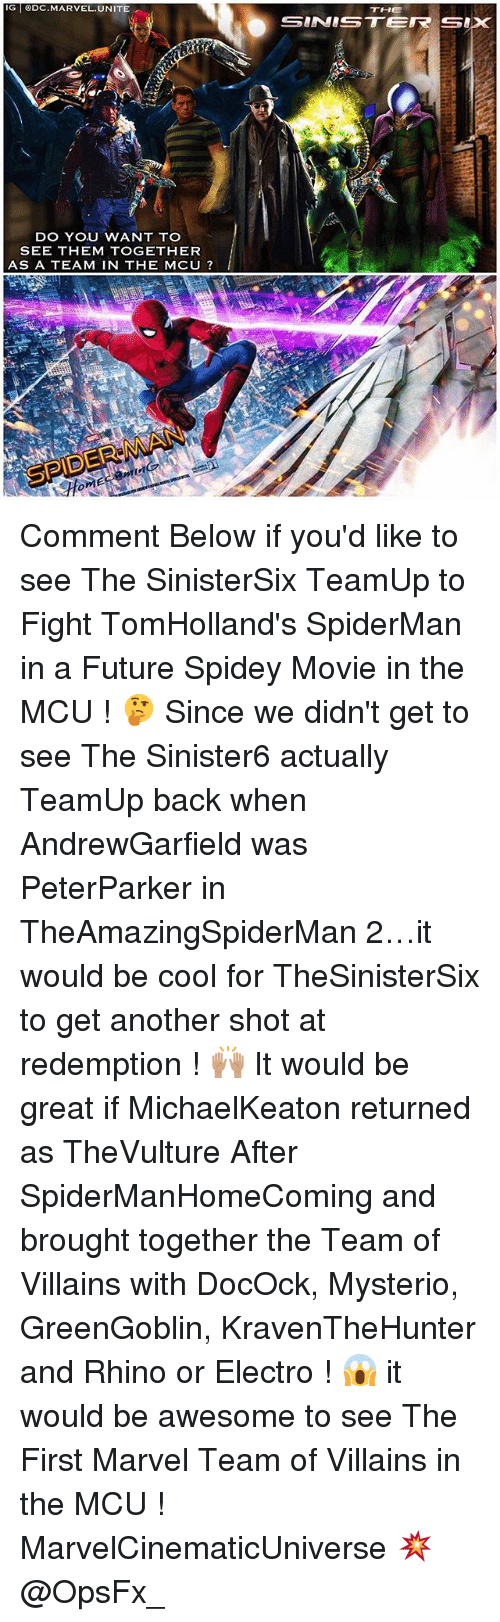 mysterio: IG ODC.MARVEL.UNITE  THE  DO YOU WANT TO  SEE THEM TOGETHER  AS A TEAM IN THE MCU ? Comment Below if you'd like to see The SinisterSix TeamUp to Fight TomHolland's SpiderMan in a Future Spidey Movie in the MCU ! 🤔 Since we didn't get to see The Sinister6 actually TeamUp back when AndrewGarfield was PeterParker in TheAmazingSpiderMan 2…it would be cool for TheSinisterSix to get another shot at redemption ! 🙌🏽 It would be great if MichaelKeaton returned as TheVulture After SpiderManHomeComing and brought together the Team of Villains with DocOck, Mysterio, GreenGoblin, KravenTheHunter and Rhino or Electro ! 😱 it would be awesome to see The First Marvel Team of Villains in the MCU ! MarvelCinematicUniverse 💥 @OpsFx_